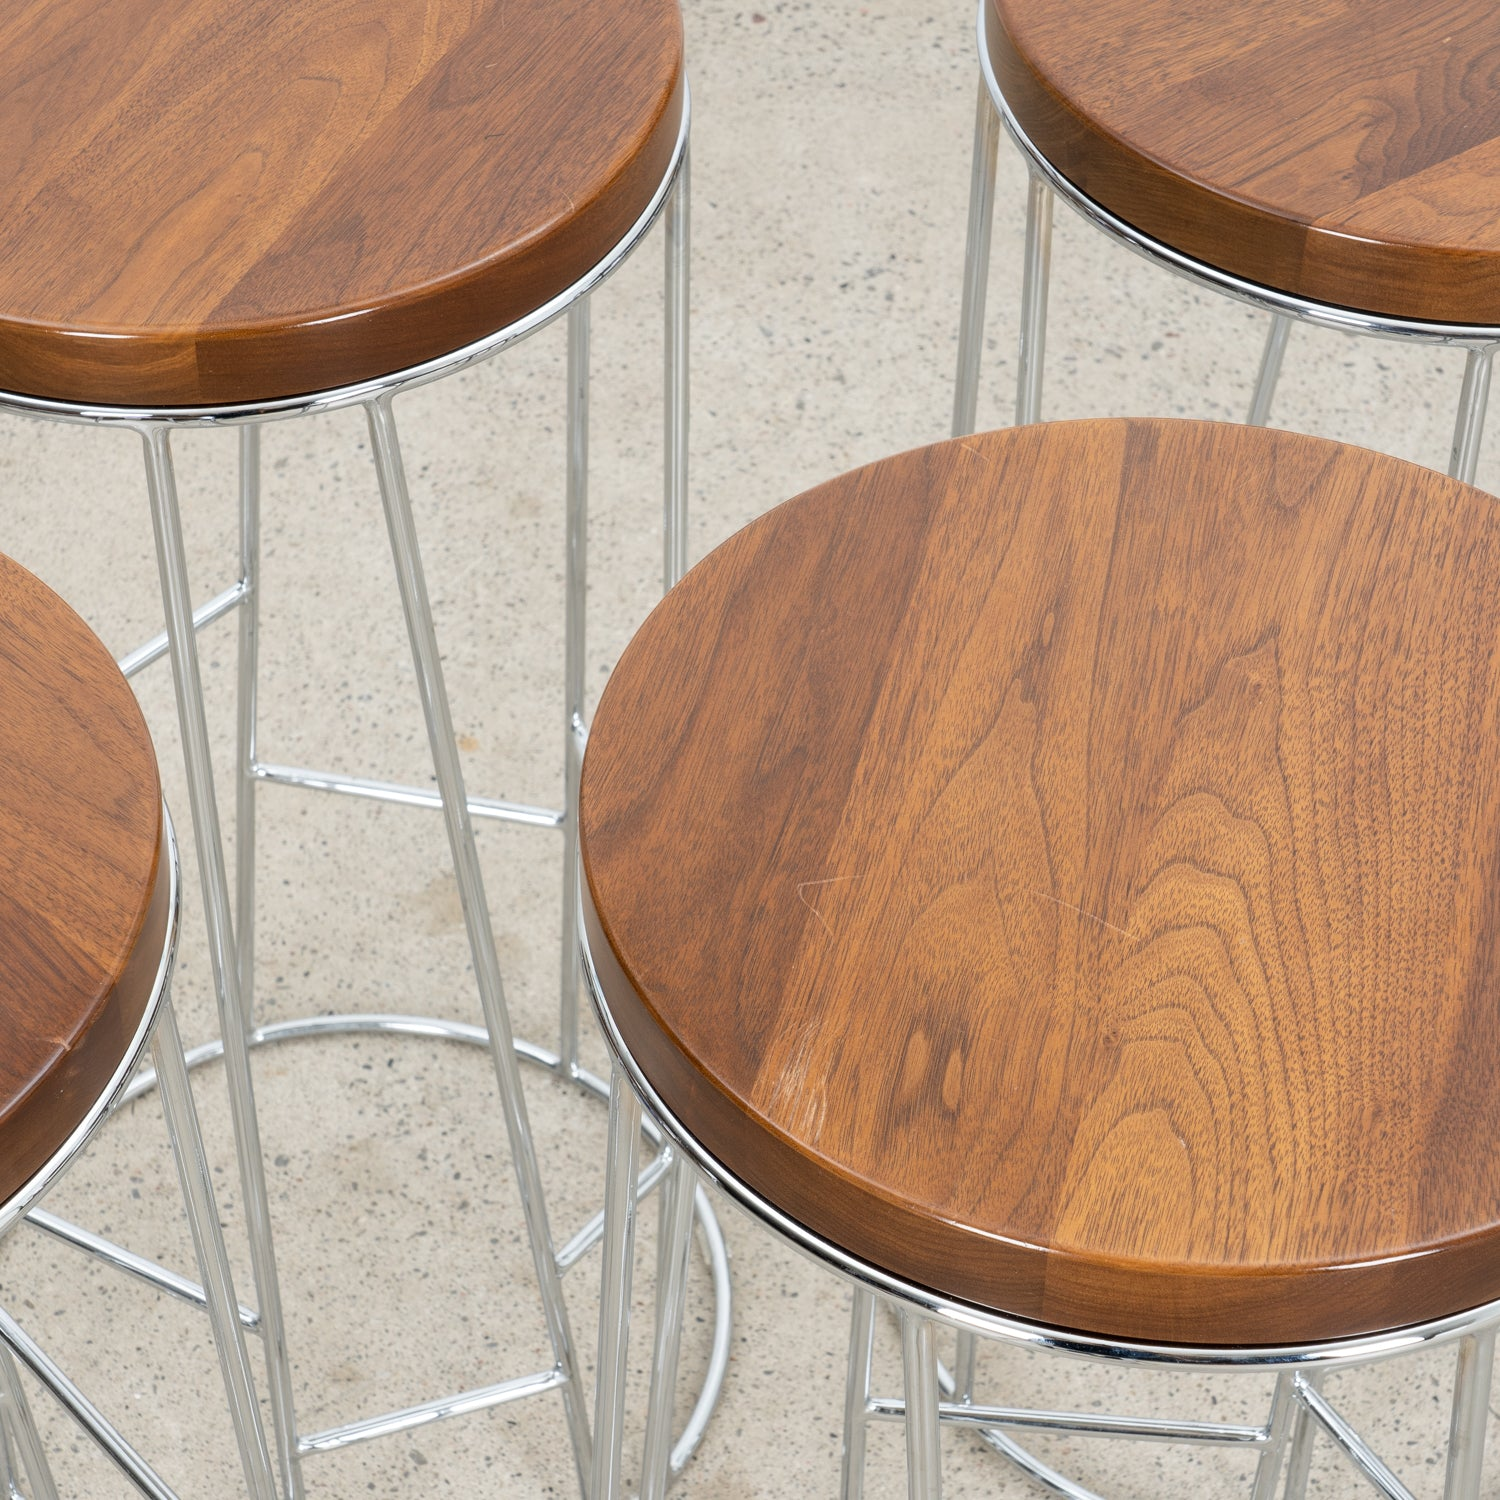 'Forest' Bar Stools by Arik Levy